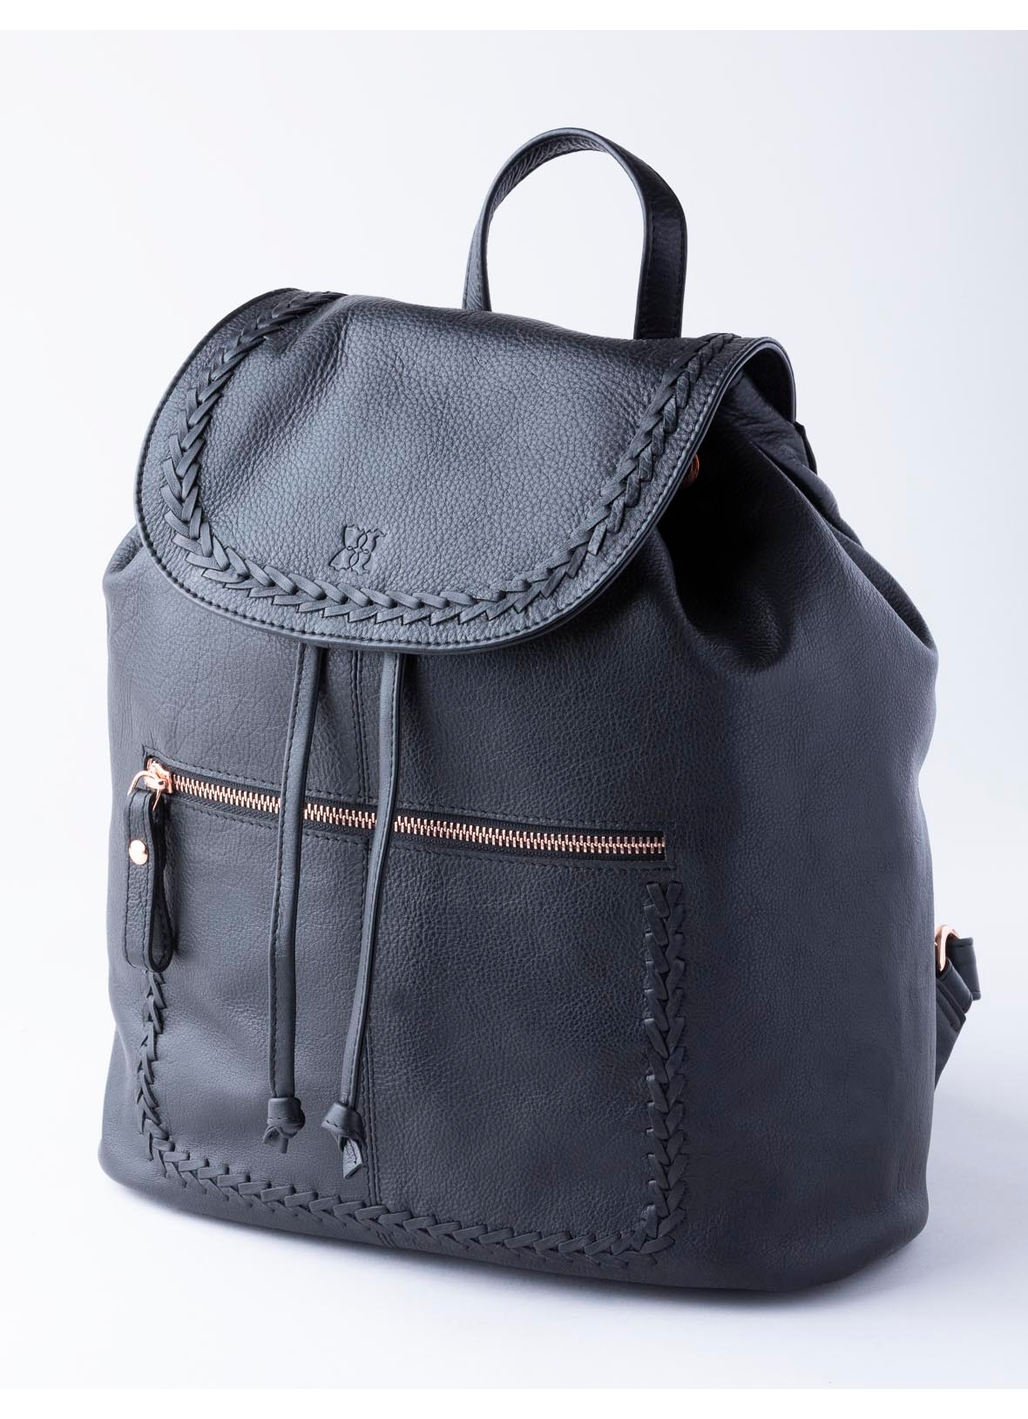 Evie Leather Backpack in Black